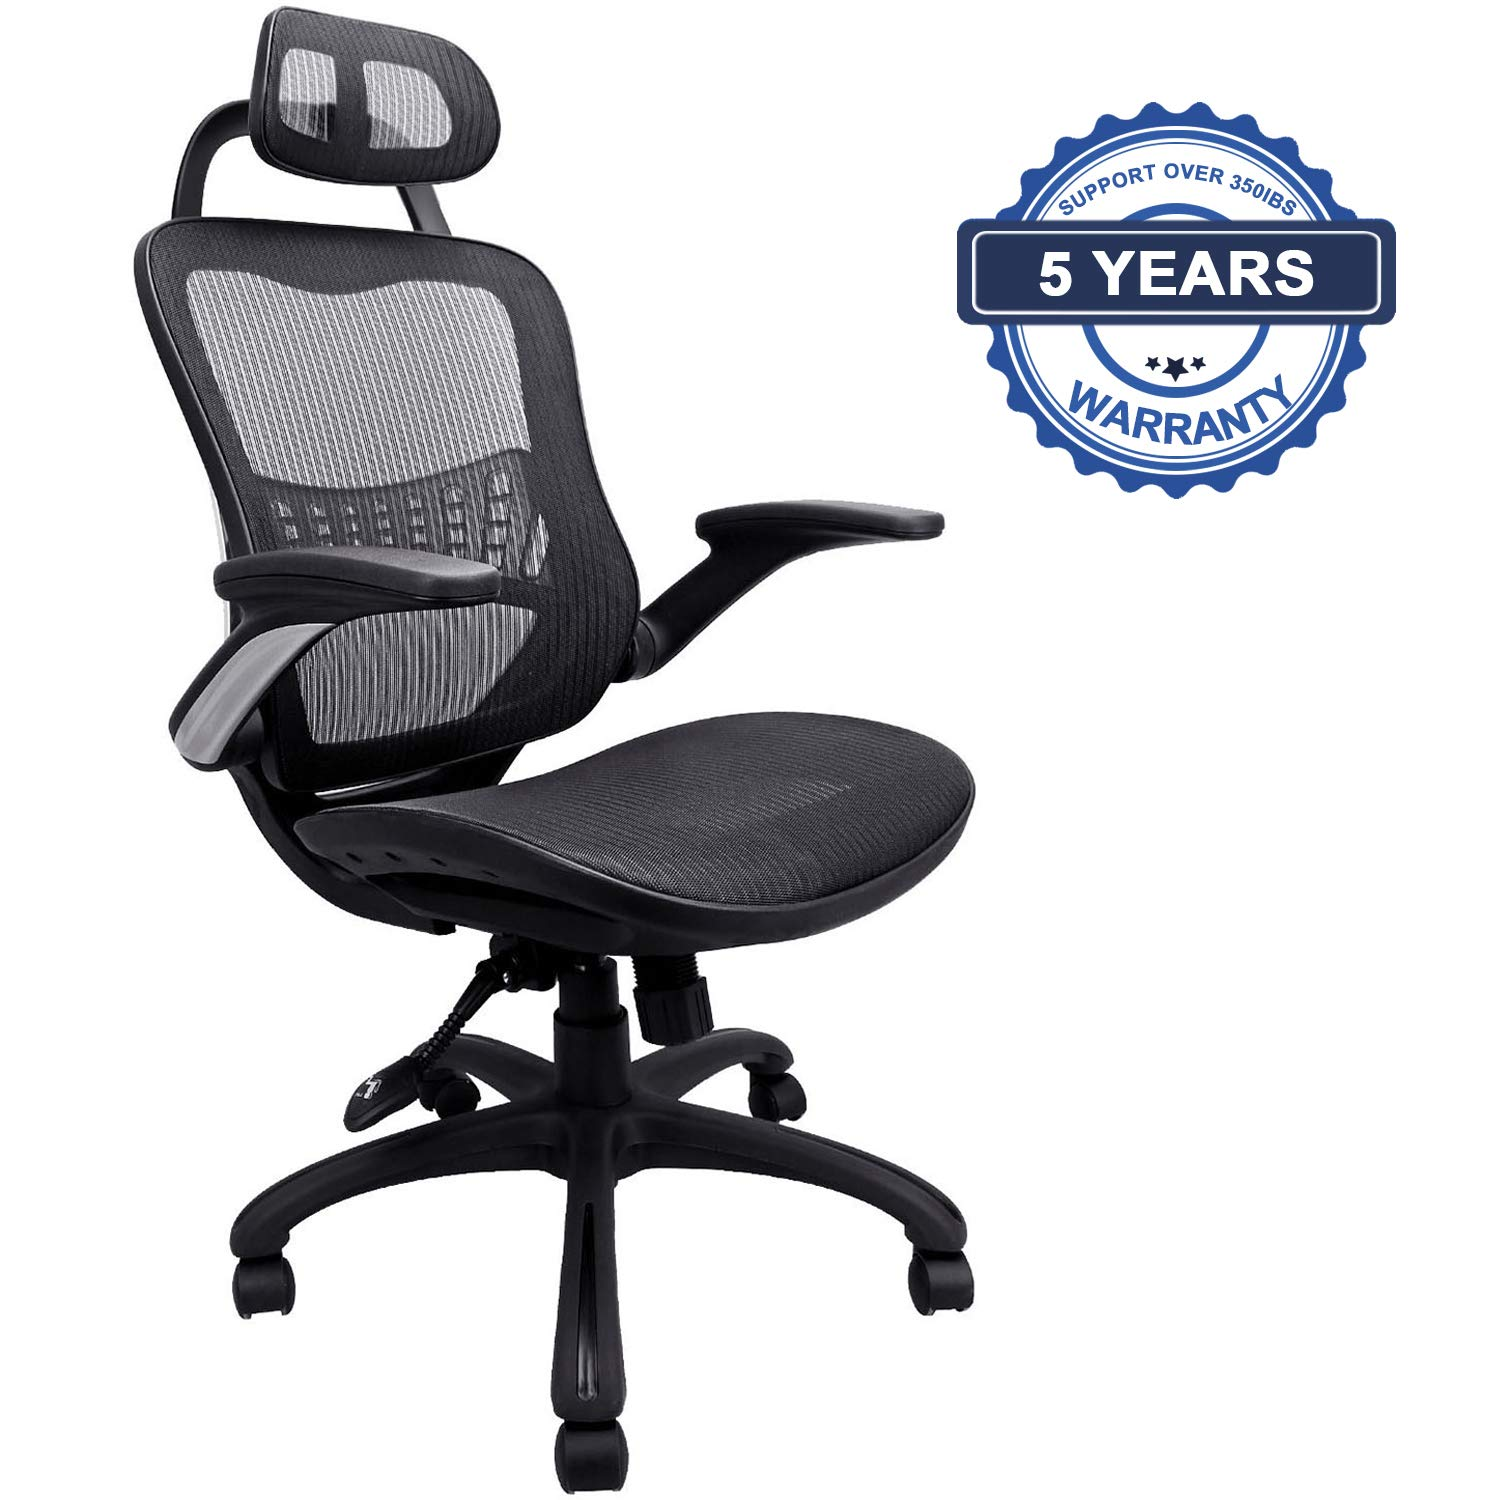 Ergonomic Office Chair, Weight Capacity Over 300Ibs Passed BIFMA,Breathable High Back Mesh Office Chairs,Adjustable Headrest,Backrest and Flip-up Armrests,Executive Office Chair for Height Under 5'11 by Komene